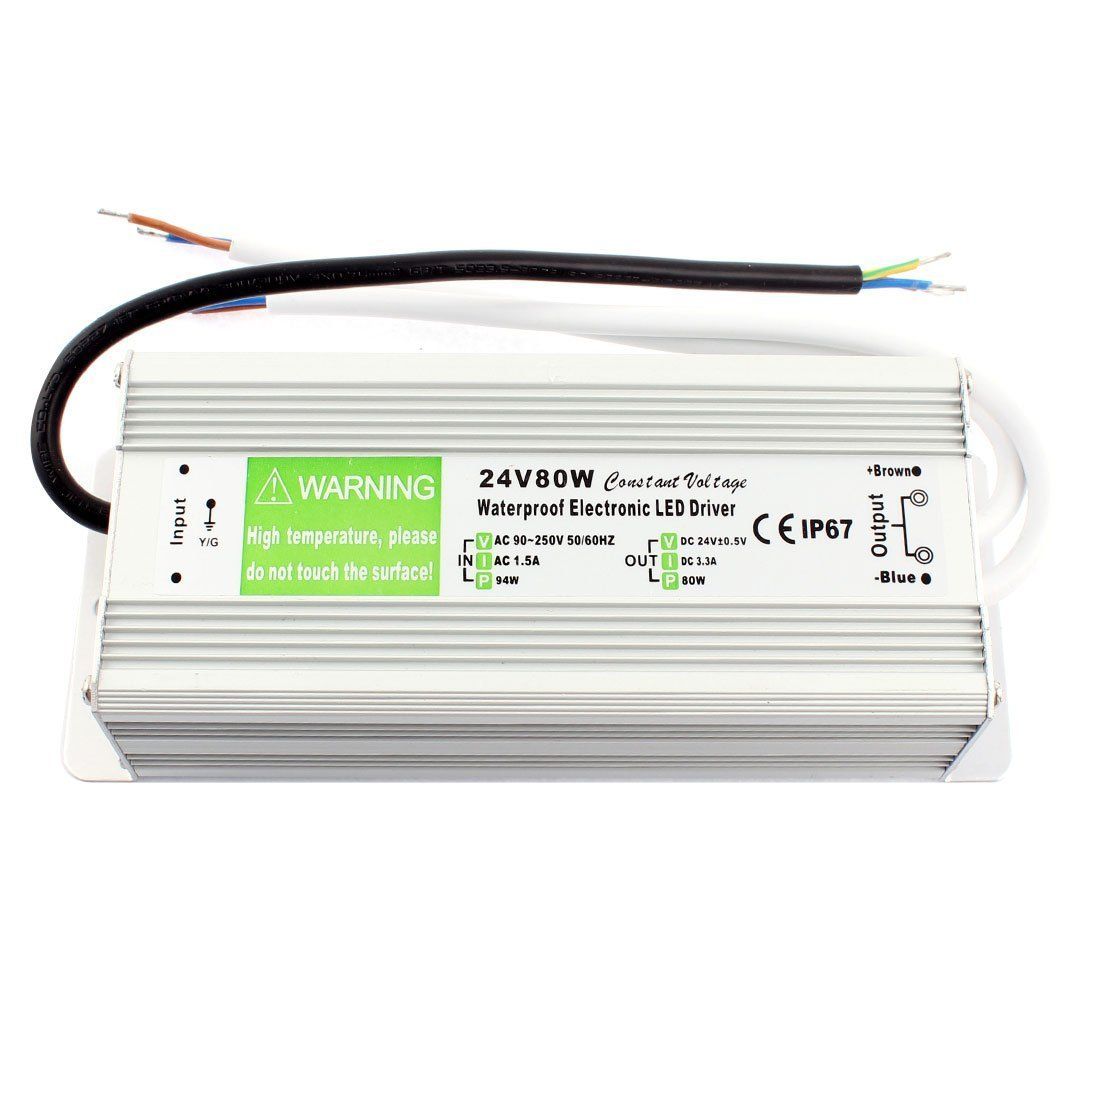 joypjlit Dc24v 80w LED Transformer Power Supply Led Driver Waterproof for Outdoor Use Ip67